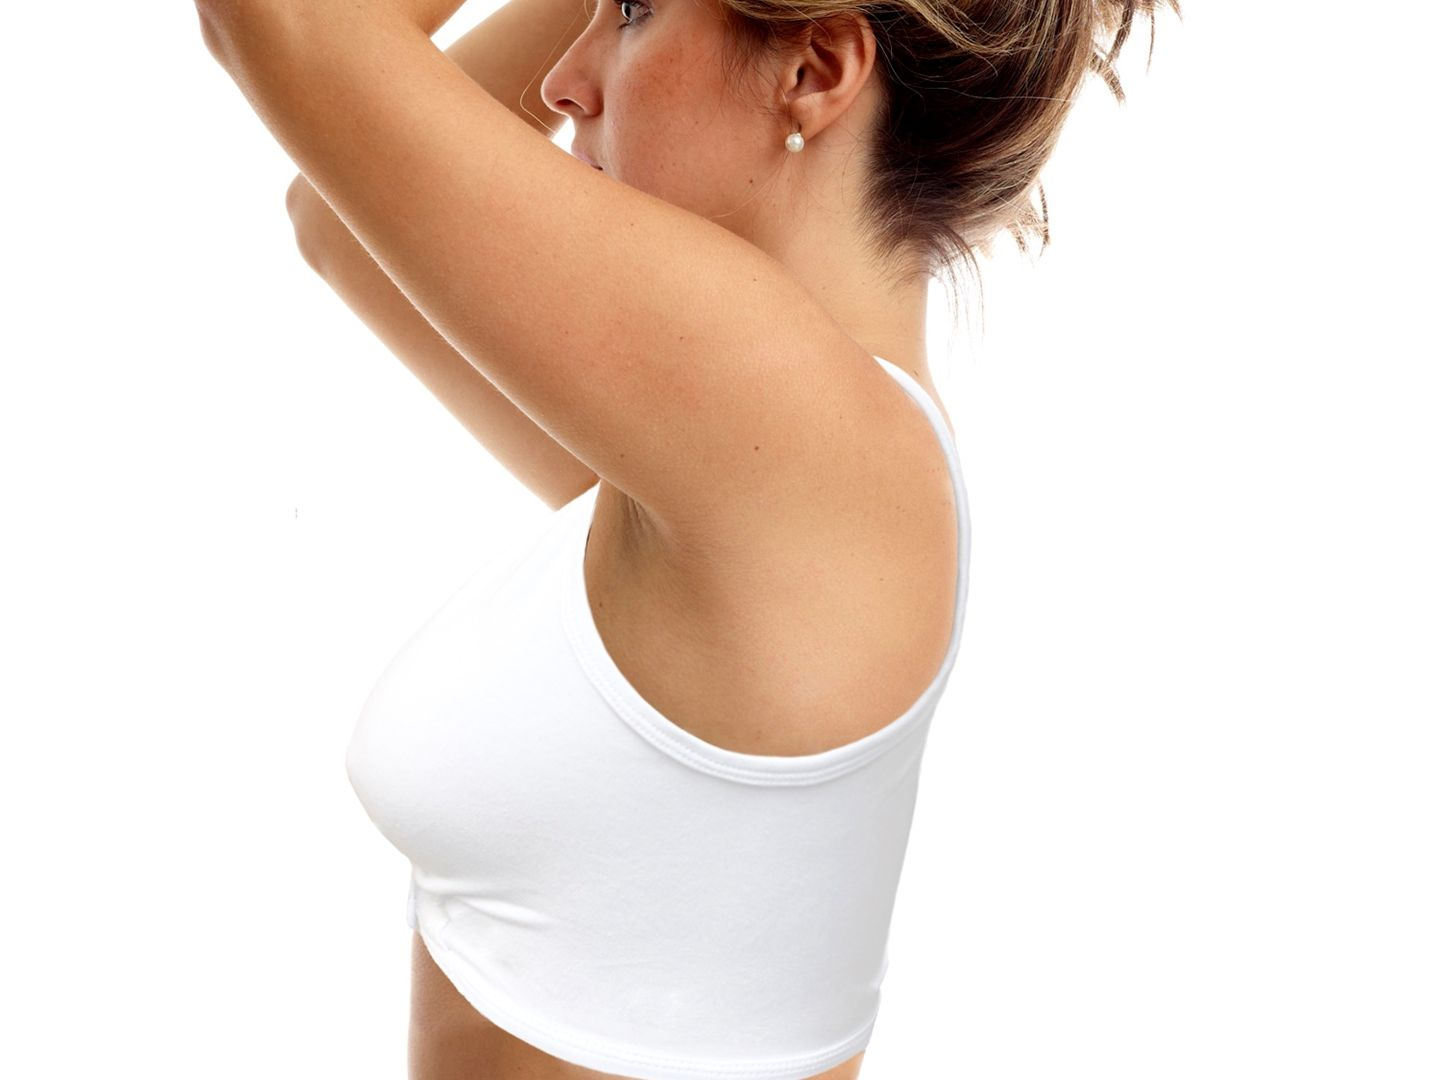 Bra for elderly woman with large breasts The 9 Best Bras For People With Arthritis Of 2021